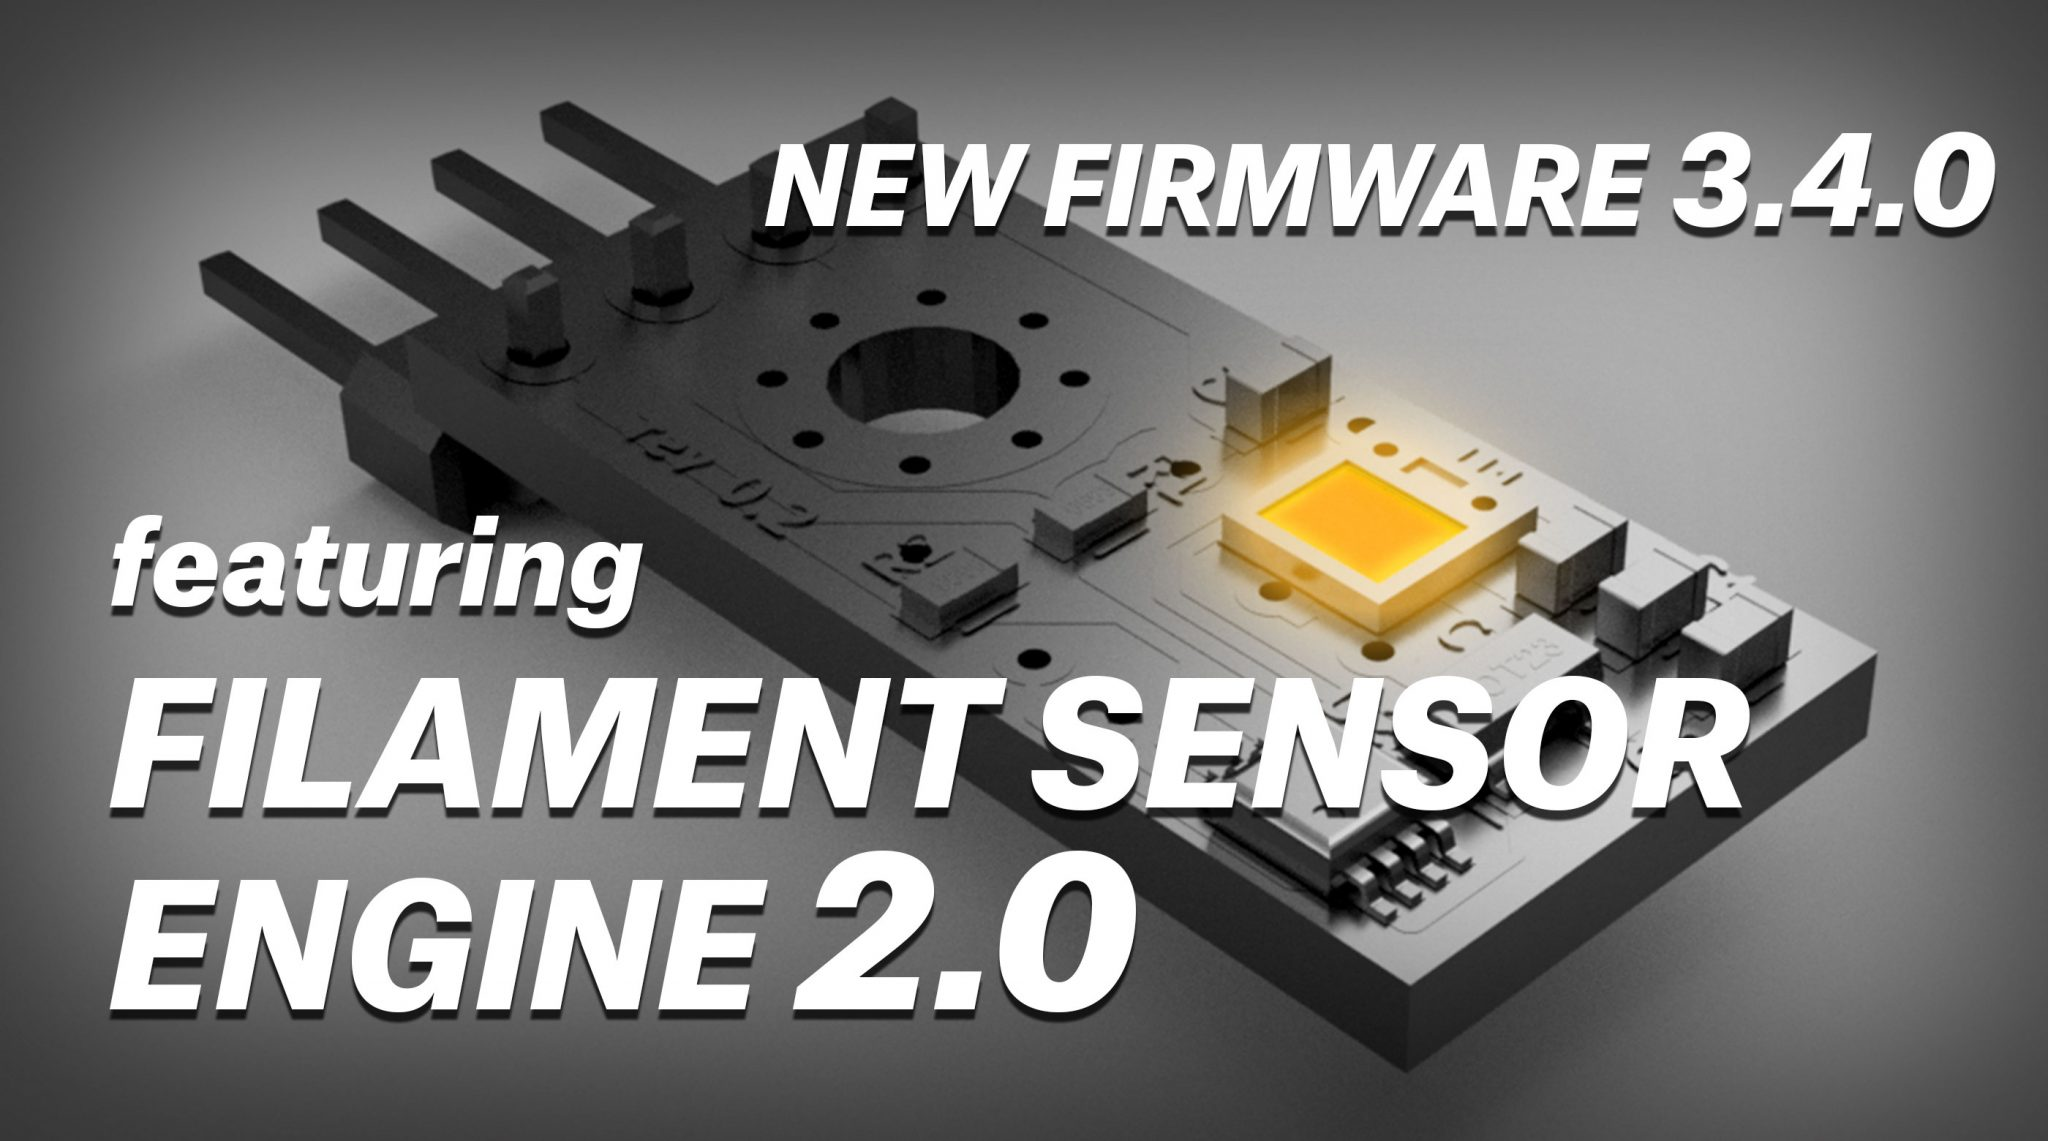 Prusa's firmware upgrade with improved filament sensor. Image via Prusa3D